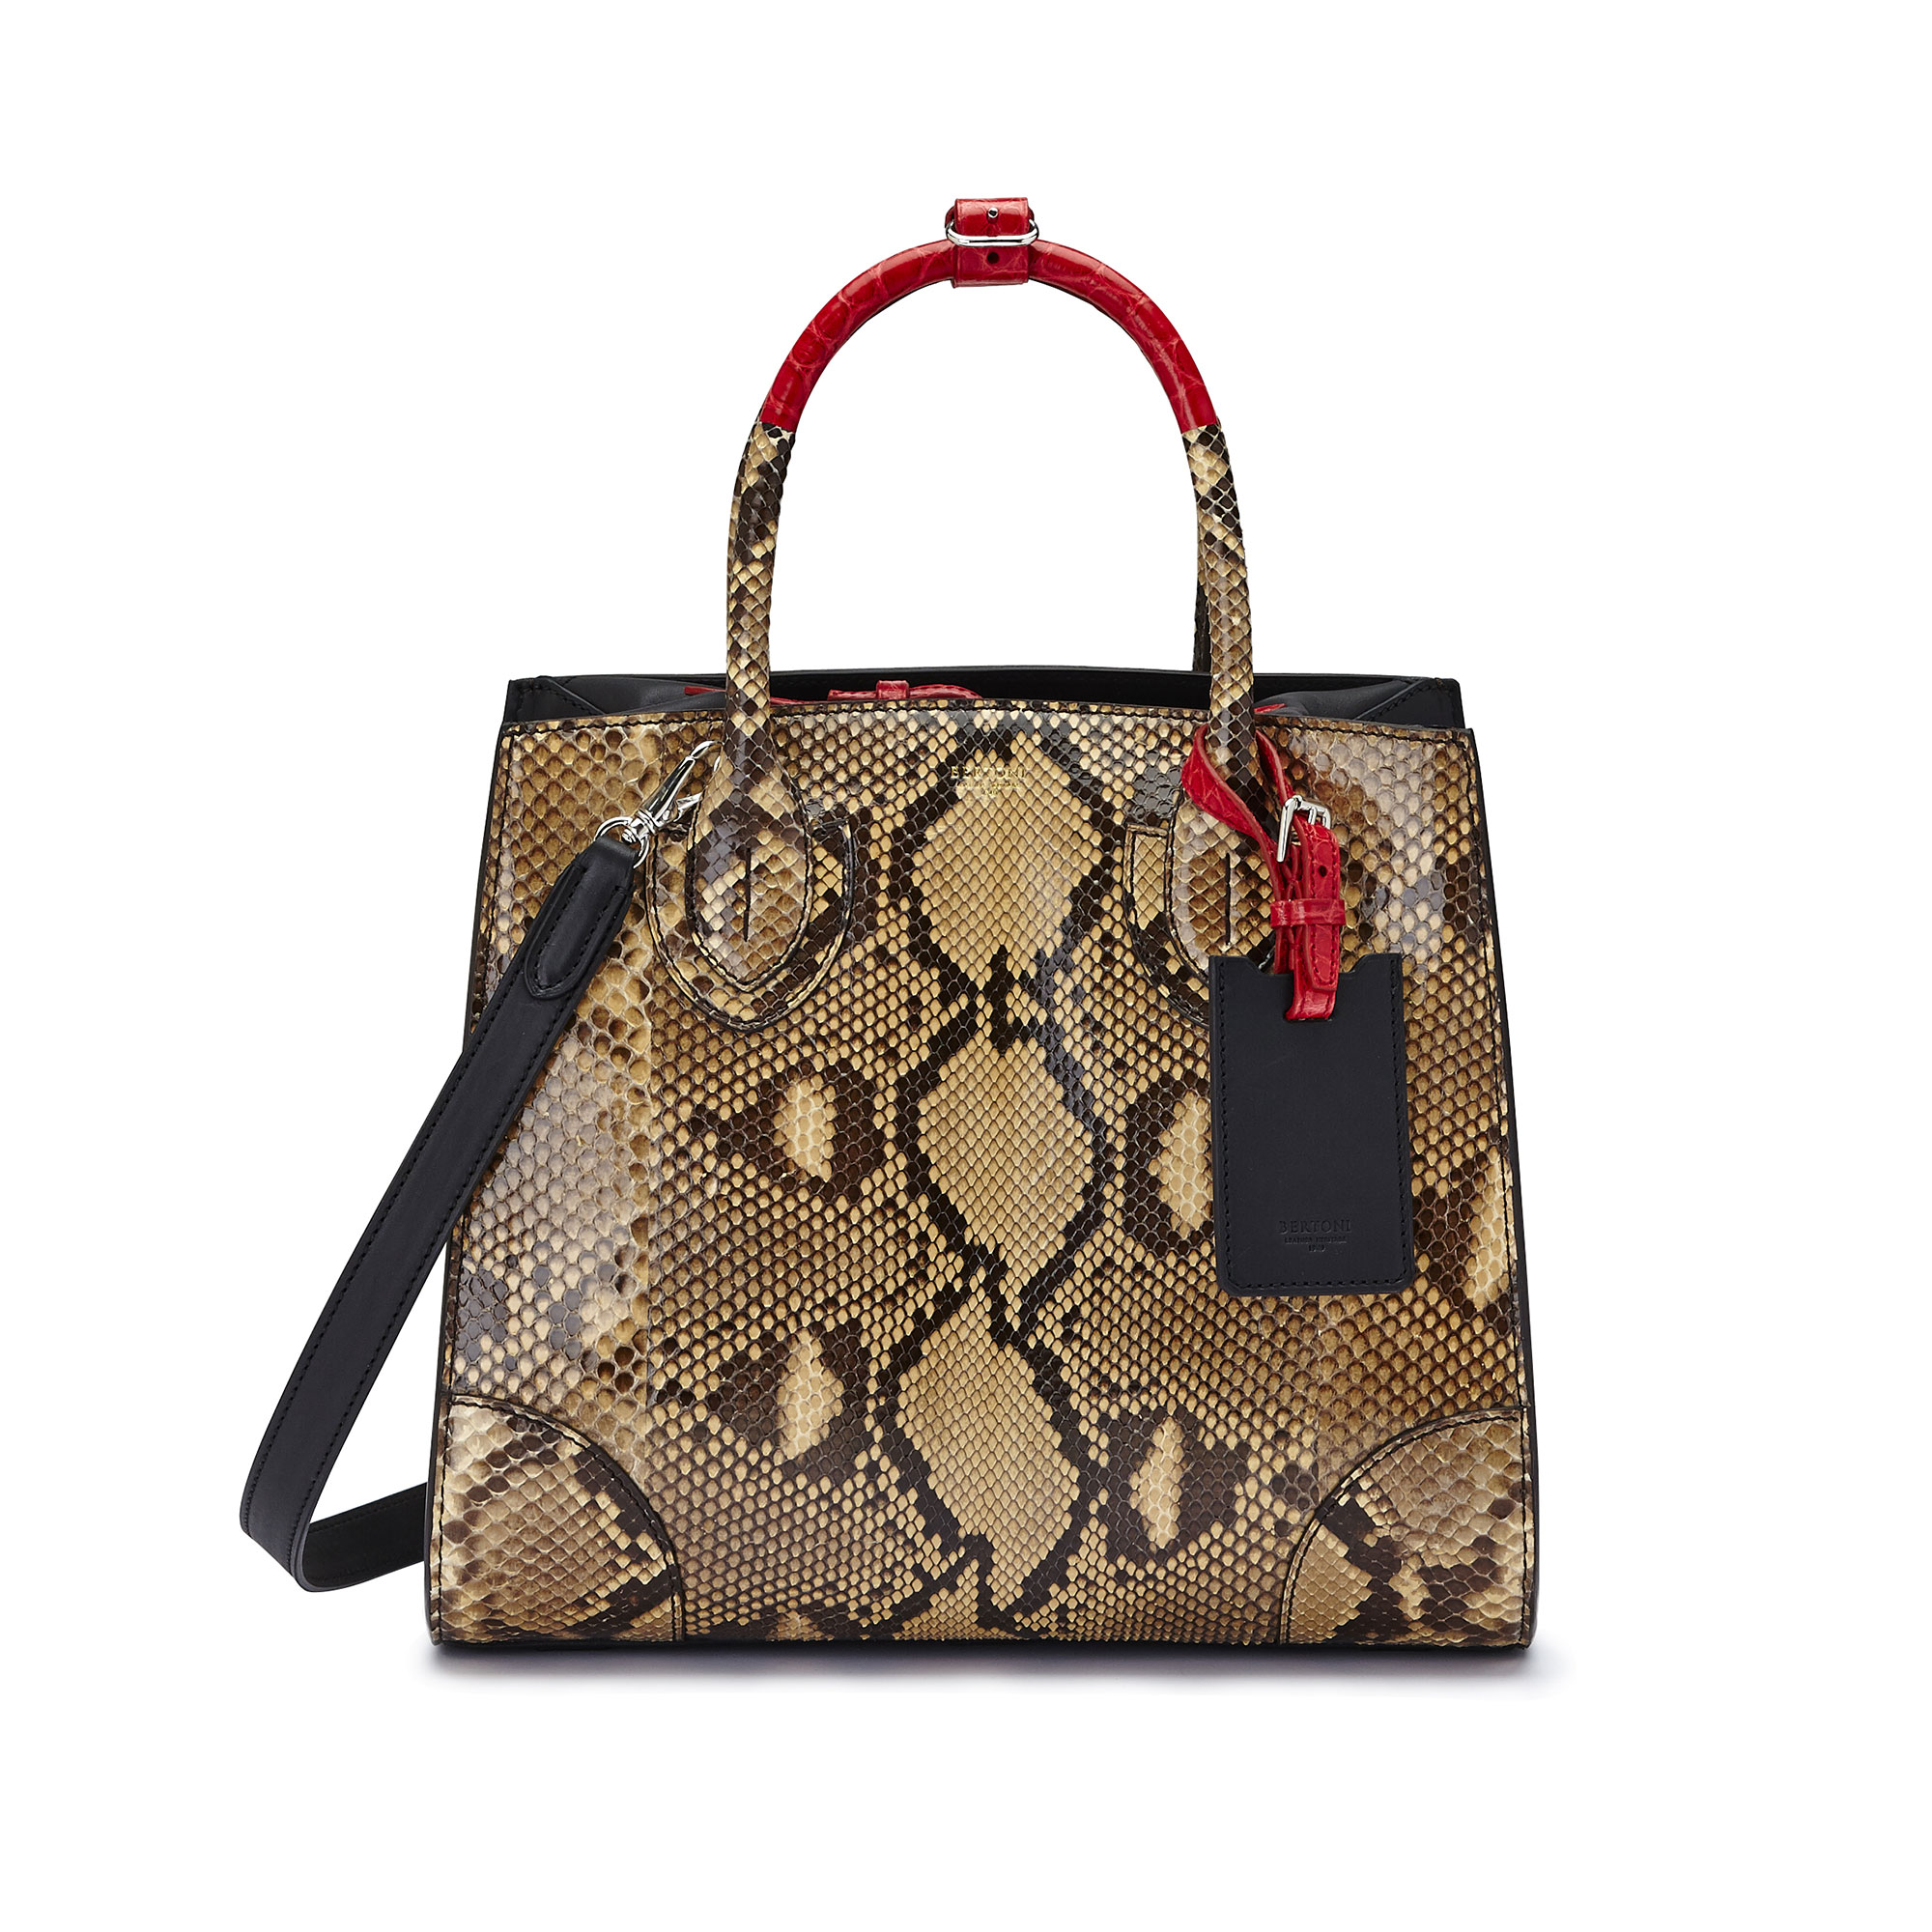 The black and red alligator, french calf, python Darcy bag by Bertoni 1949 01